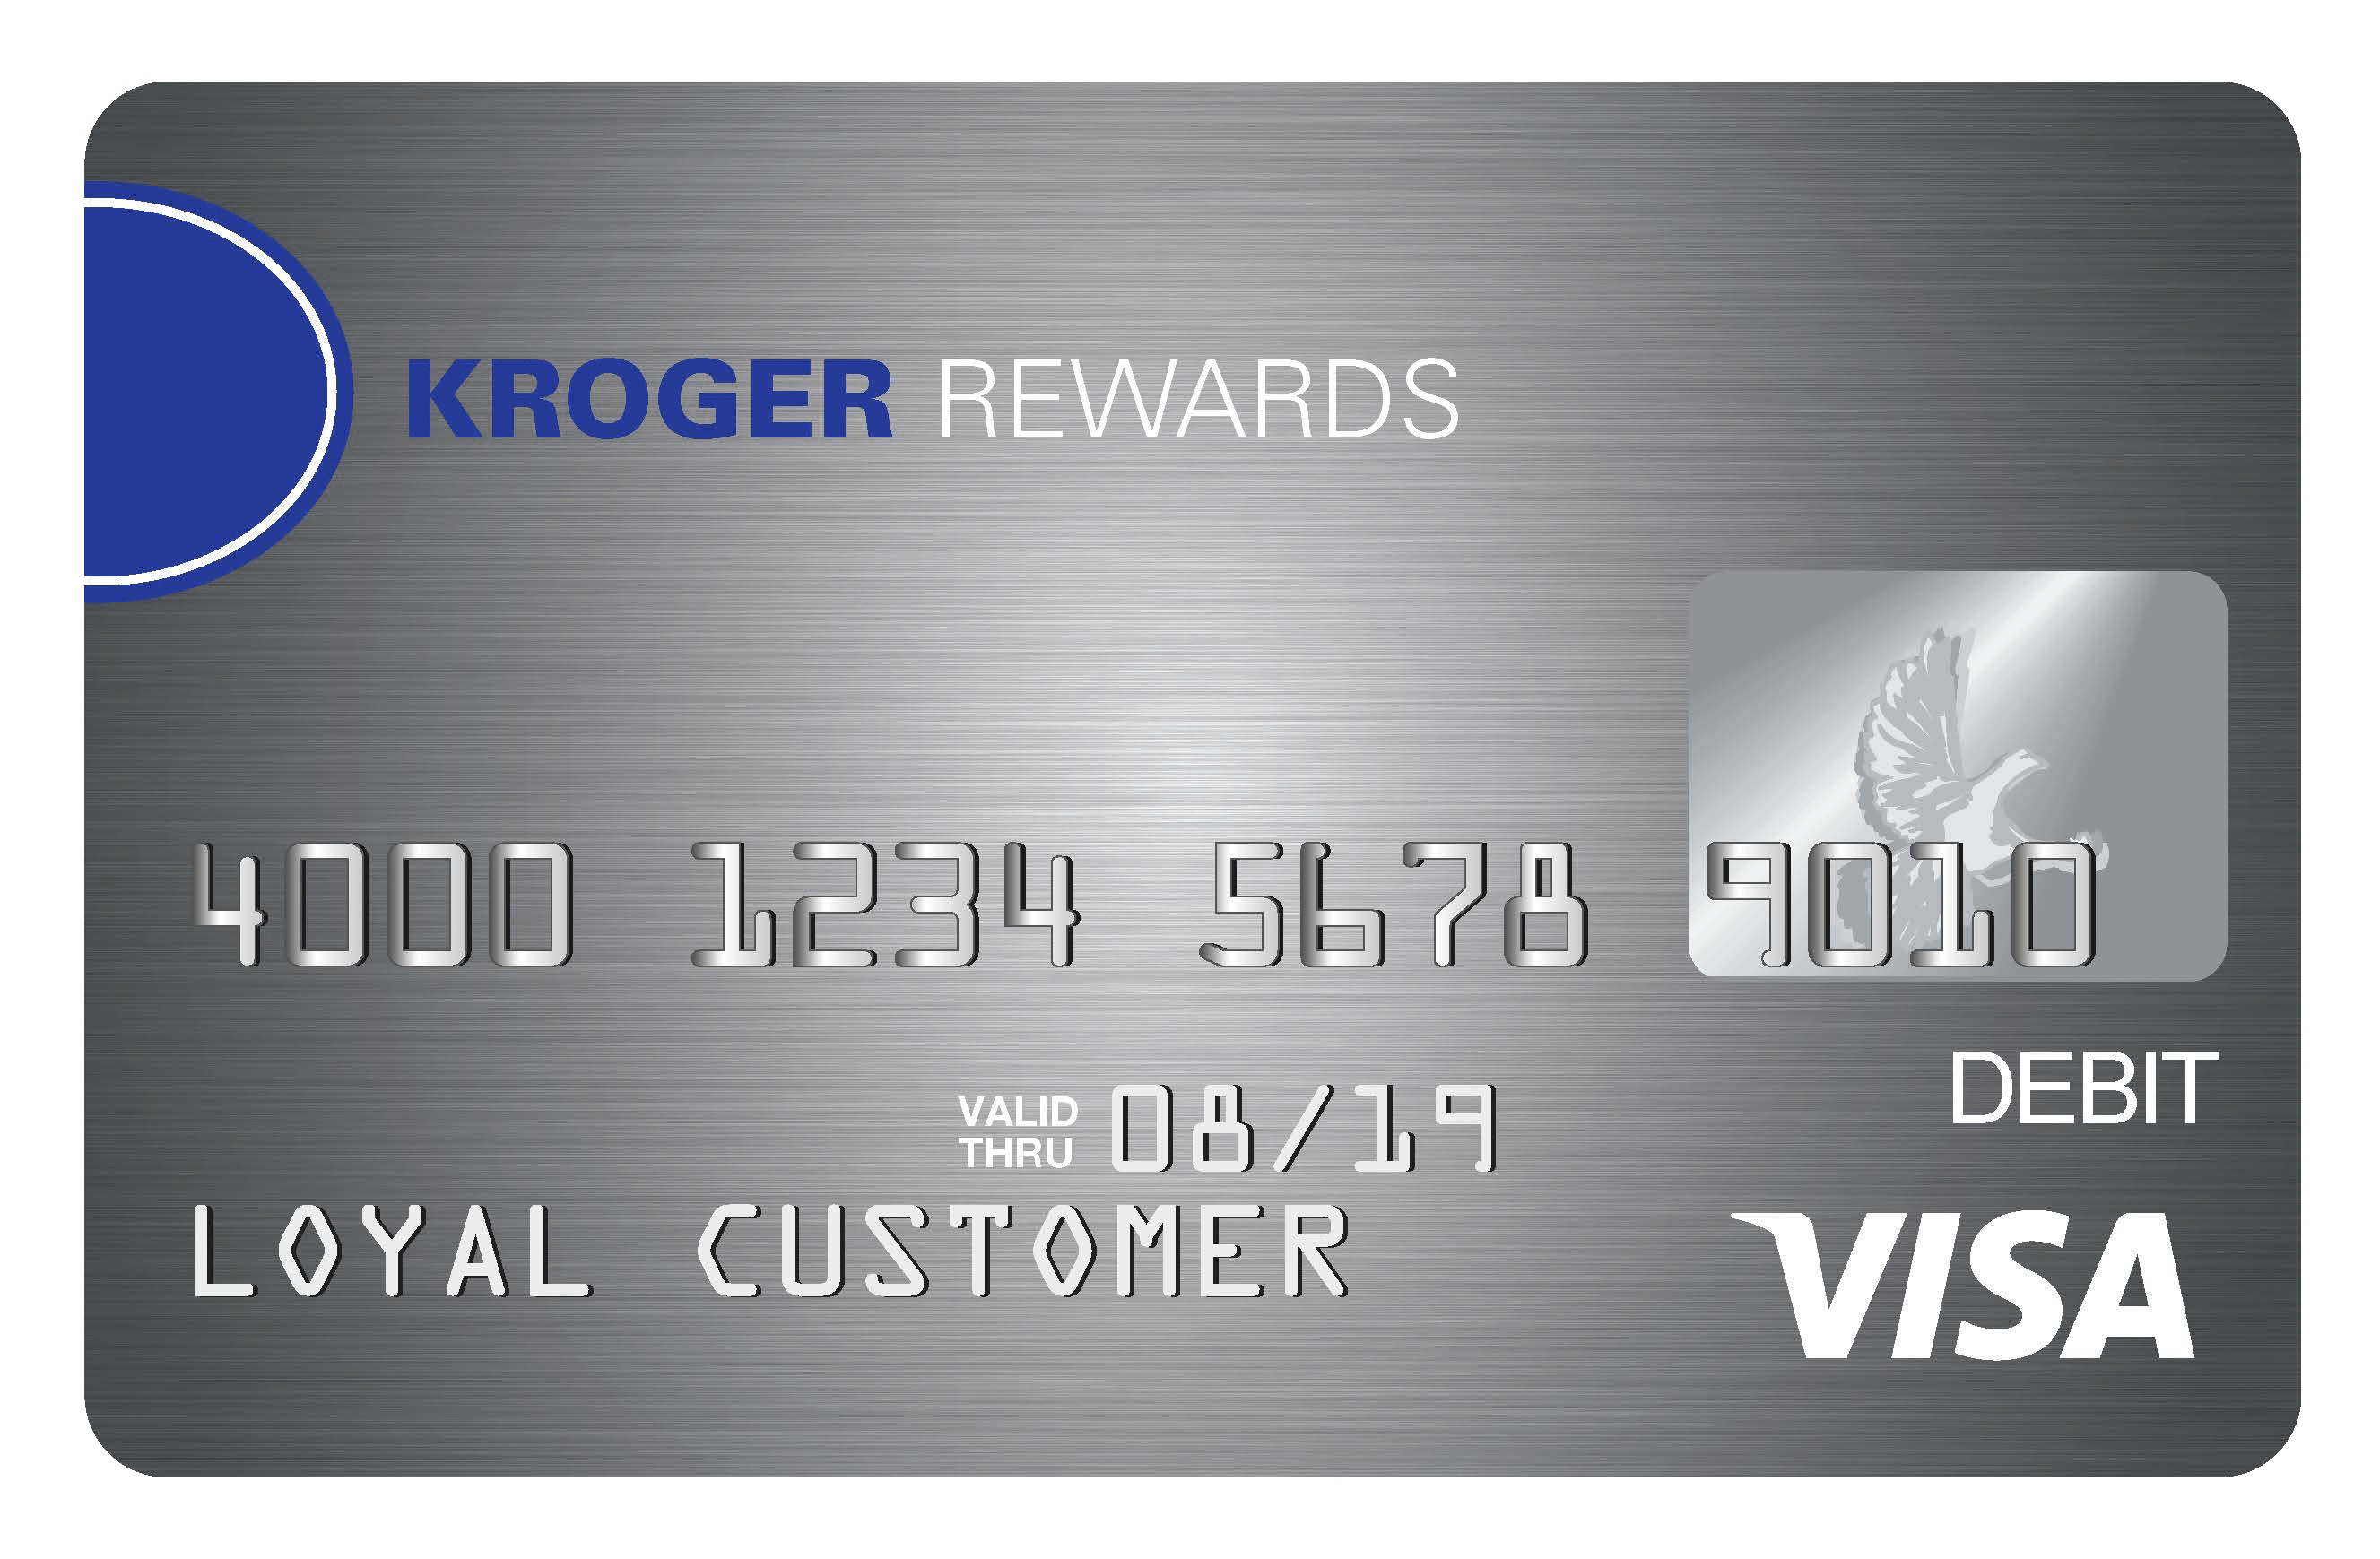 earn rewards towards free groceries and fuel savings - Free Visa Card